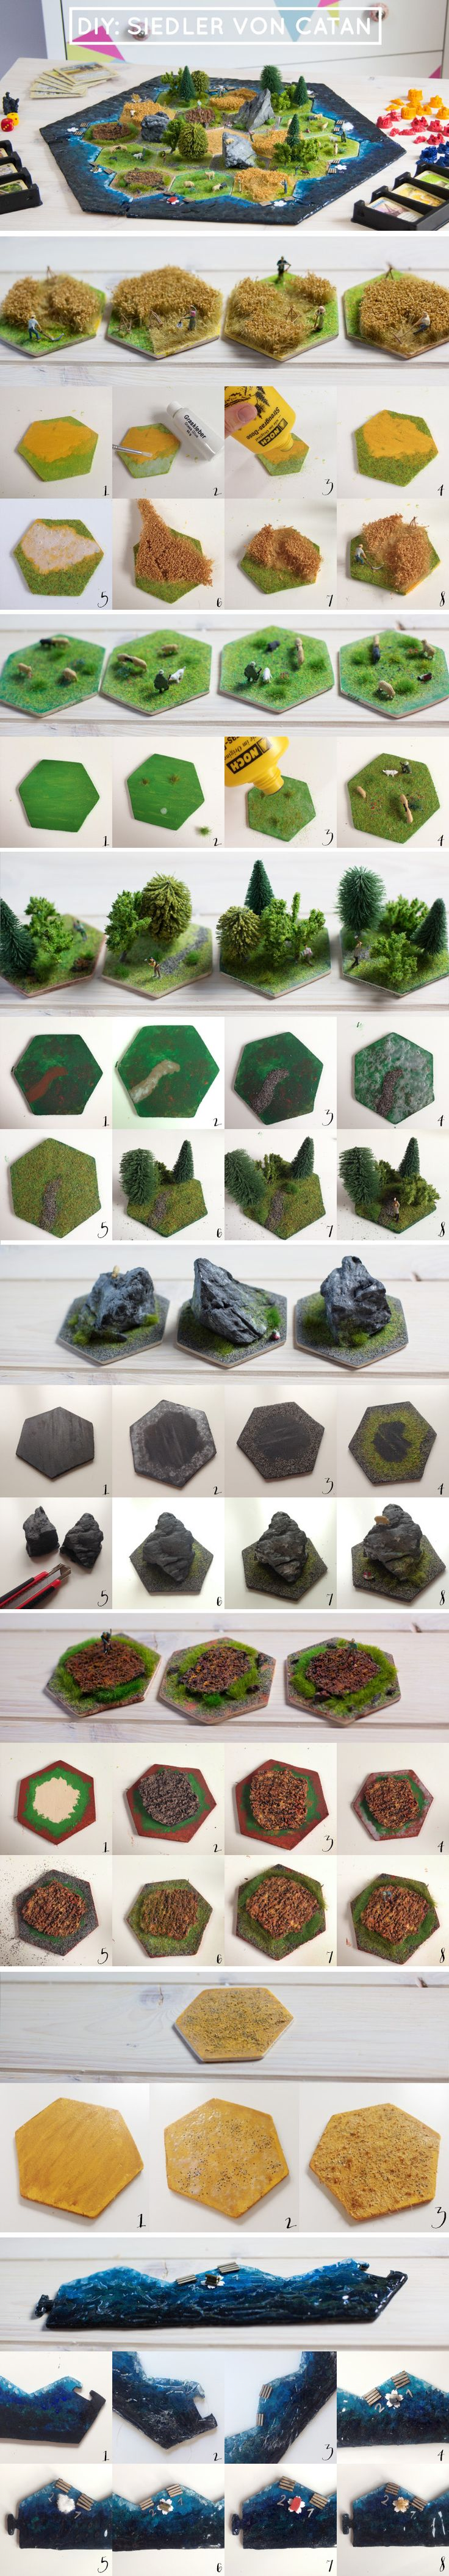 The Settlers of Catan - DIY!